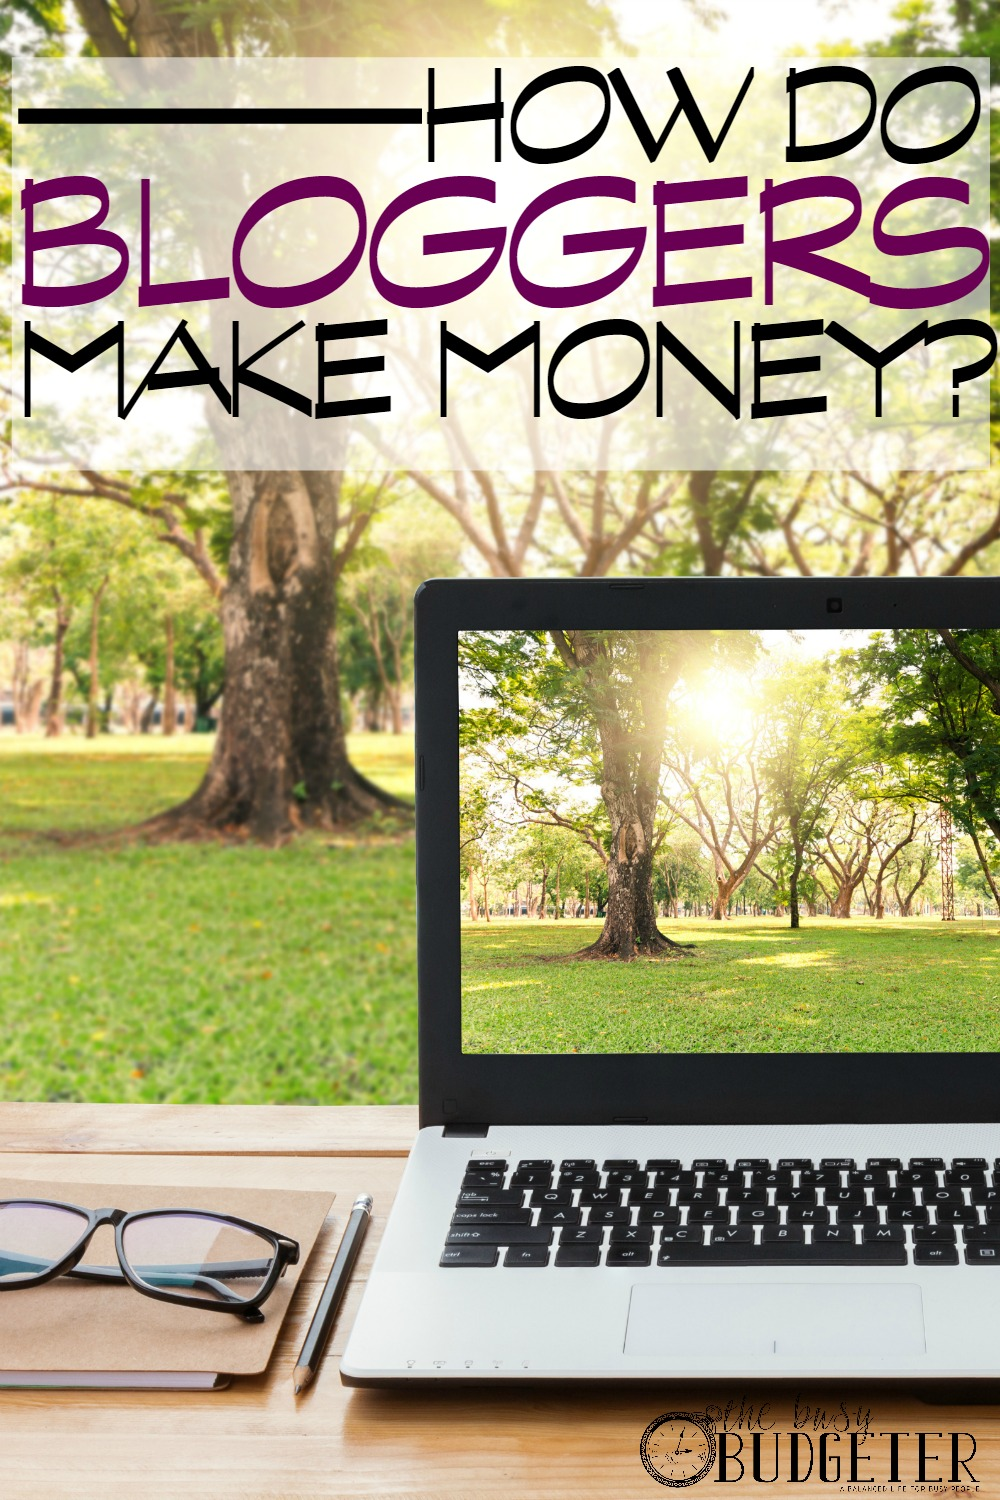 How do Bloggers Make Money? I have been trying to figure out how bloggers make money for forever! I thought it was just ads on the site. This is a great resource. It's the first thing I read where they actually explained step by step where the money comes from and how they got started. Sooooo tempted to start blogging...